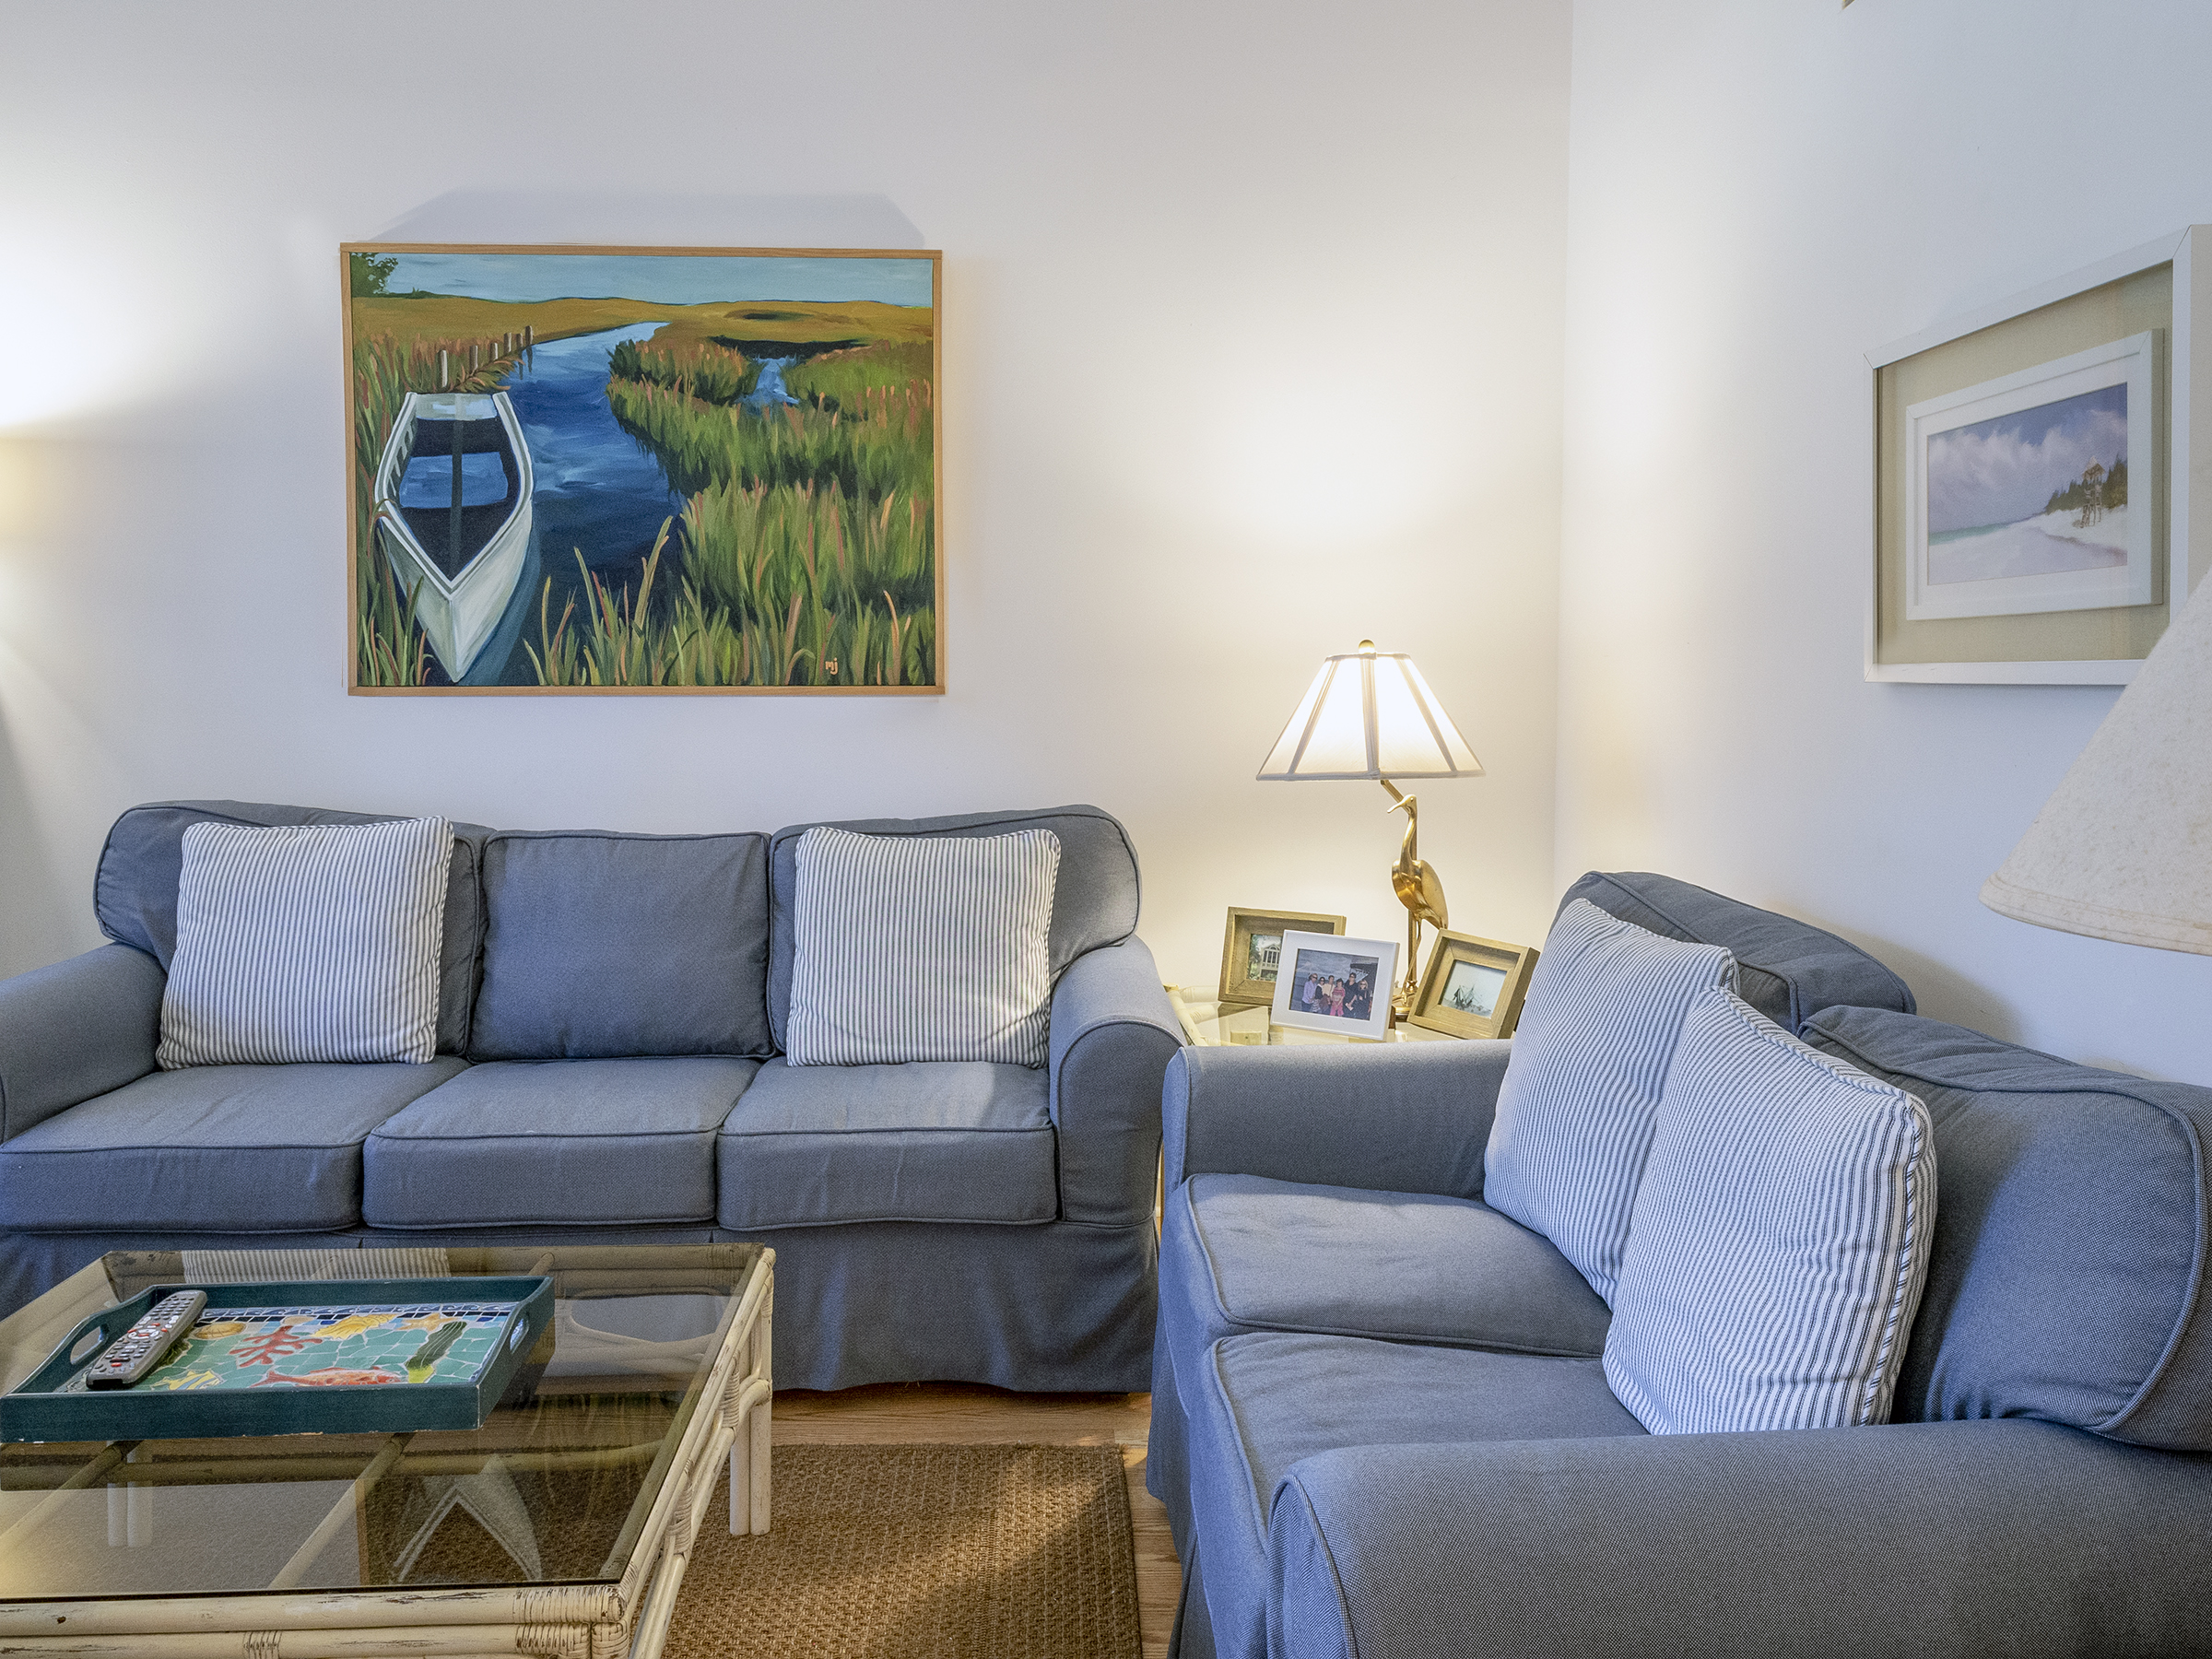 Plenty of comfortable seating in the living areas